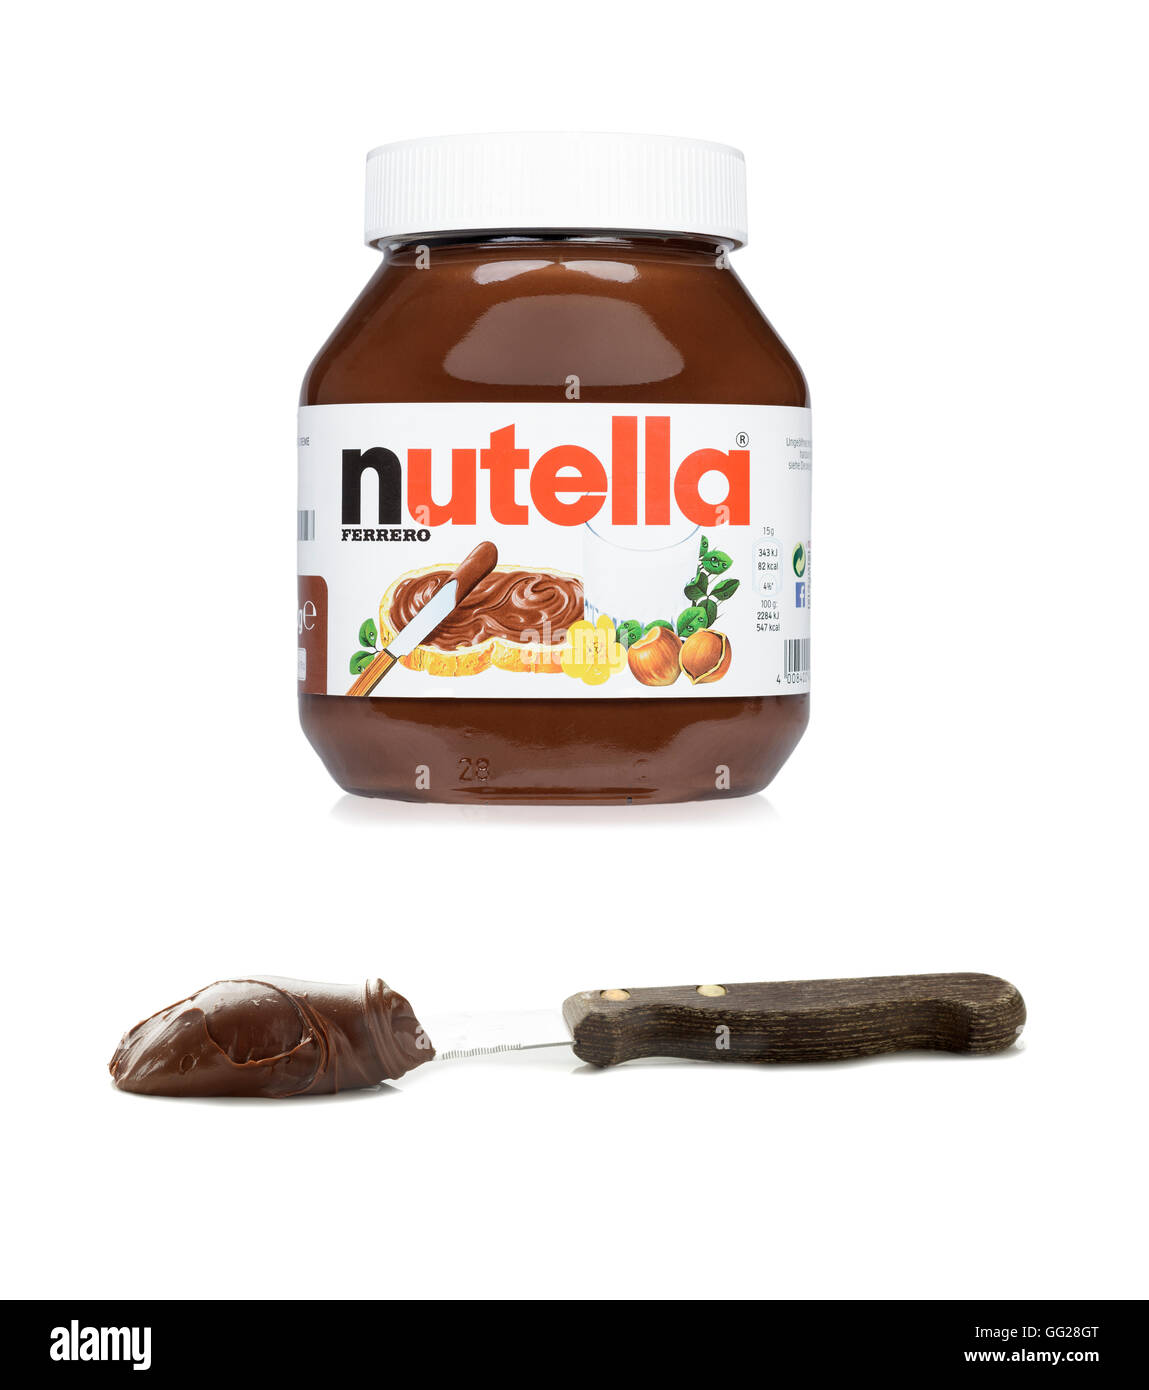 Nutella jar with spread on knife - Stock Image